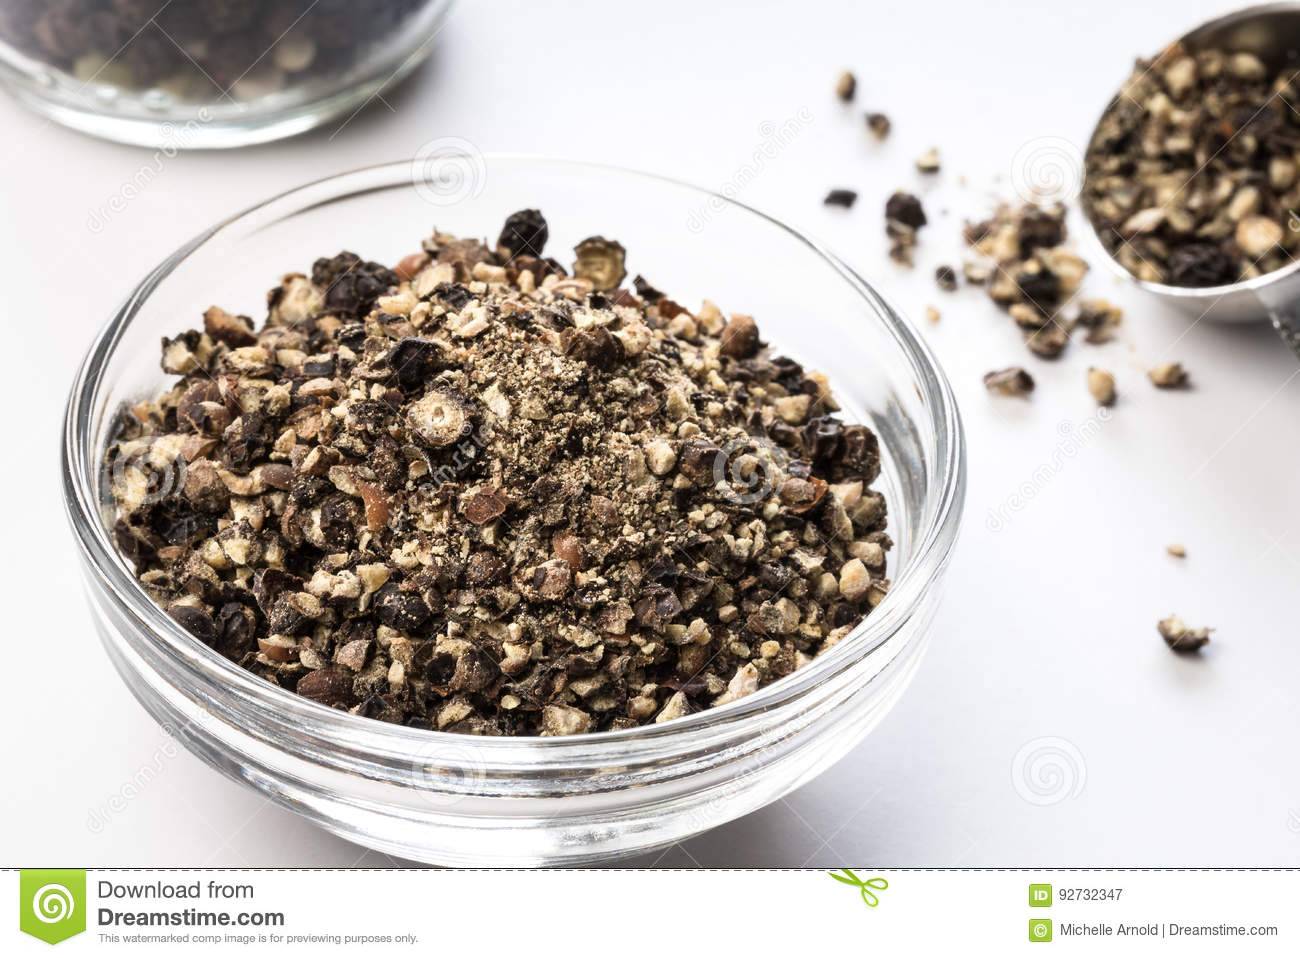 Coarsely Ground Black Pepper in a Bowl